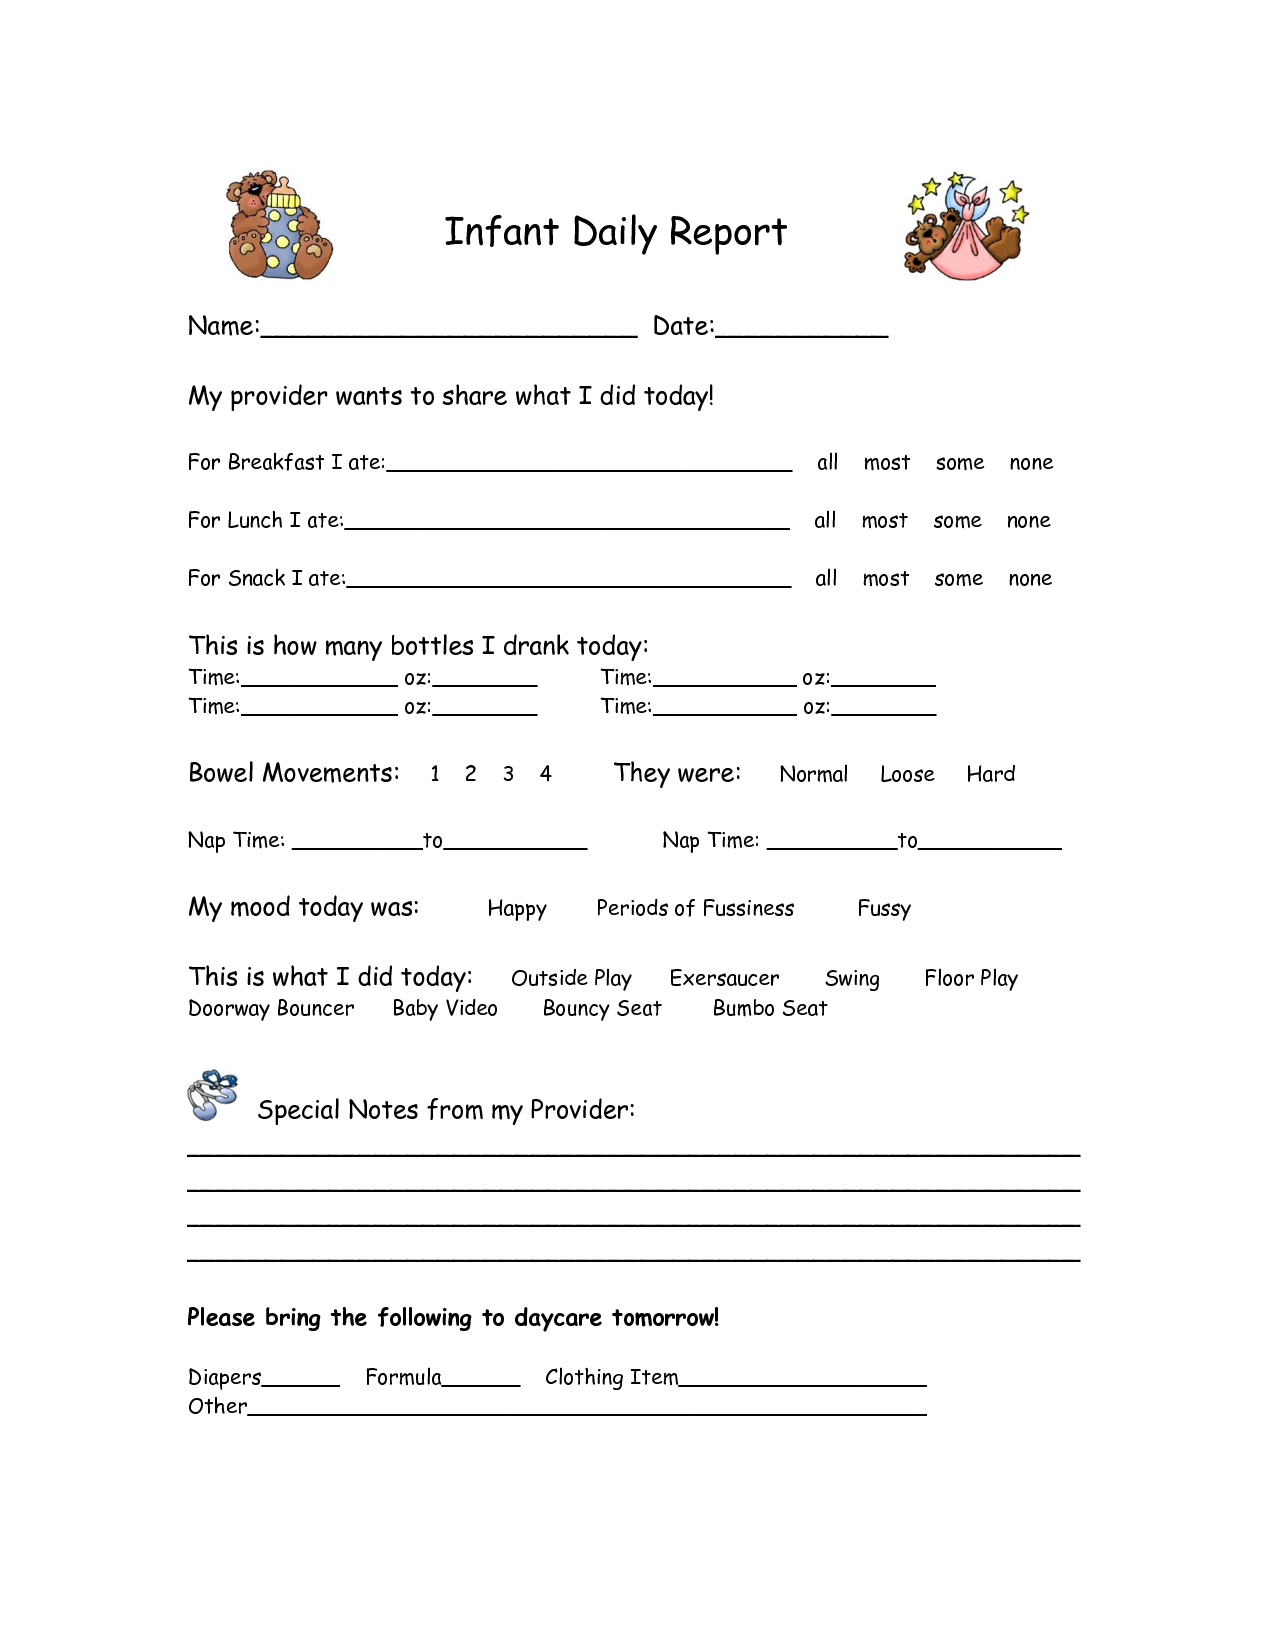 Infant Daily Report Sheet Google Image Result for http://img ...